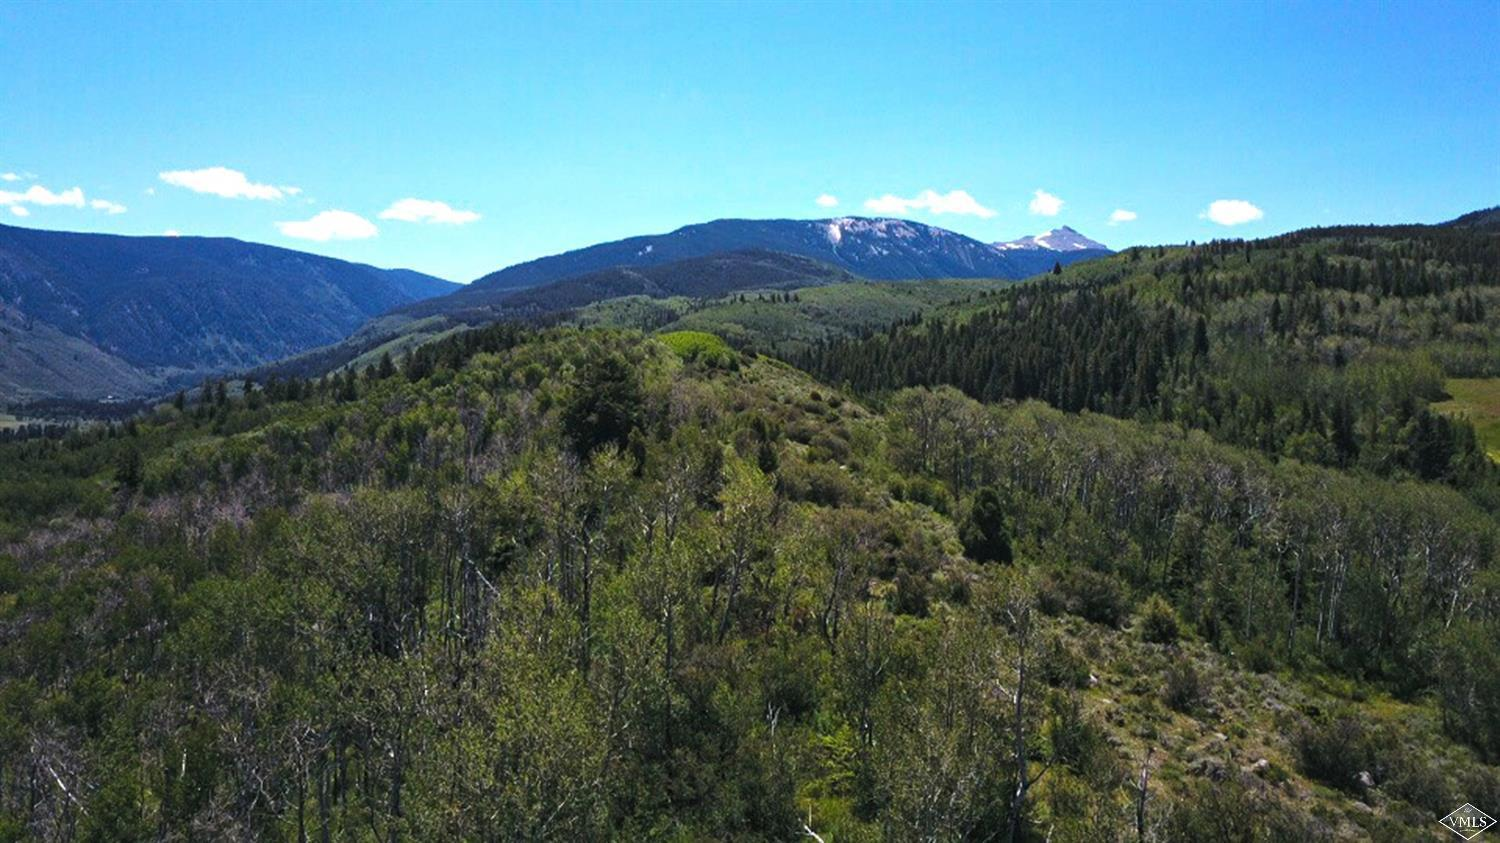 2000 W Lake Creek Road, Edwards, CO 81632 Property Photo - Edwards, CO real estate listing